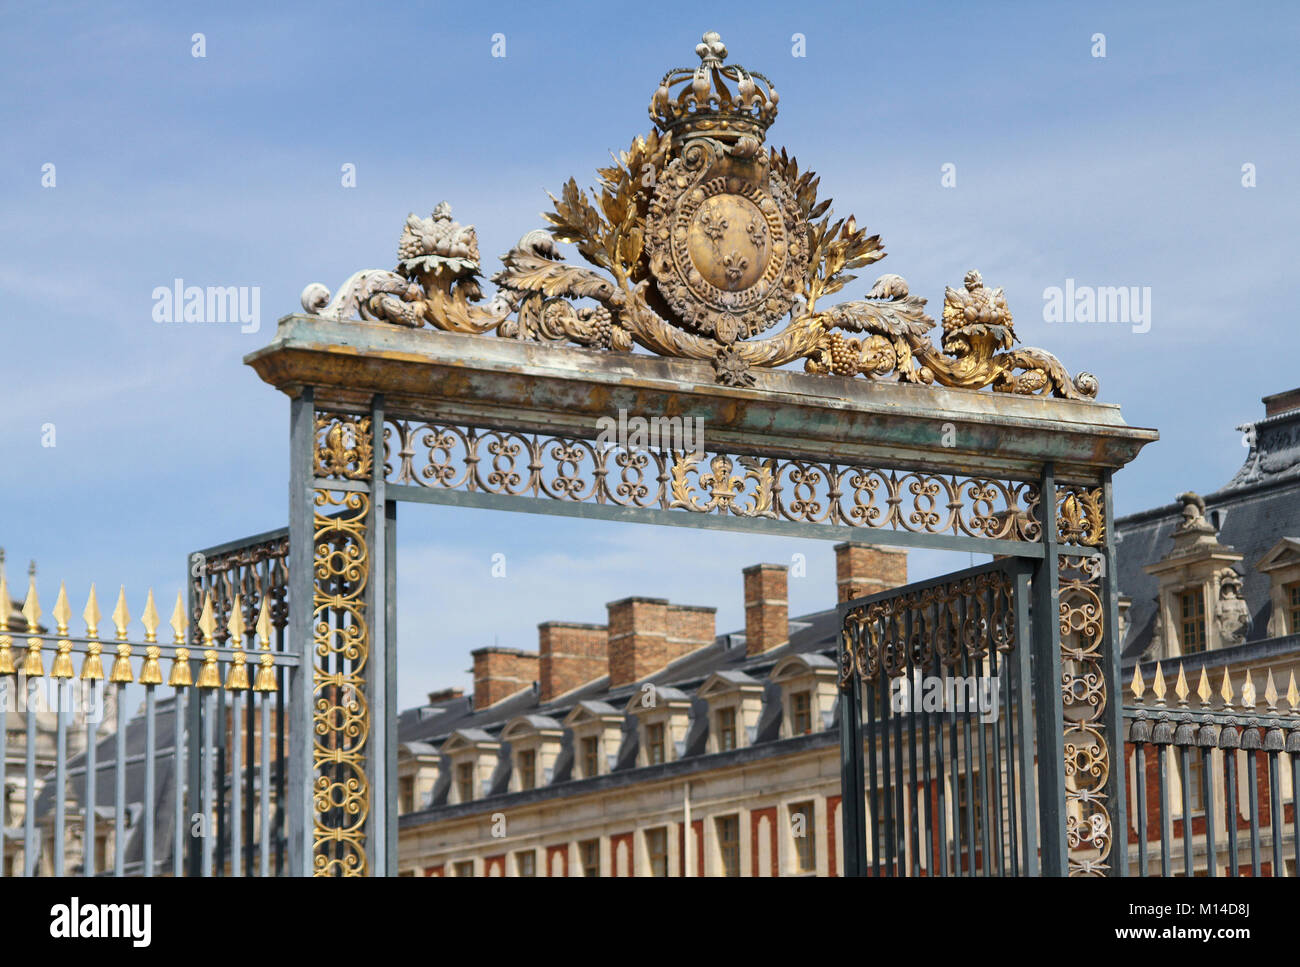 The front gate of Palace of Versailles, Ile-De-France, France, - Stock Image